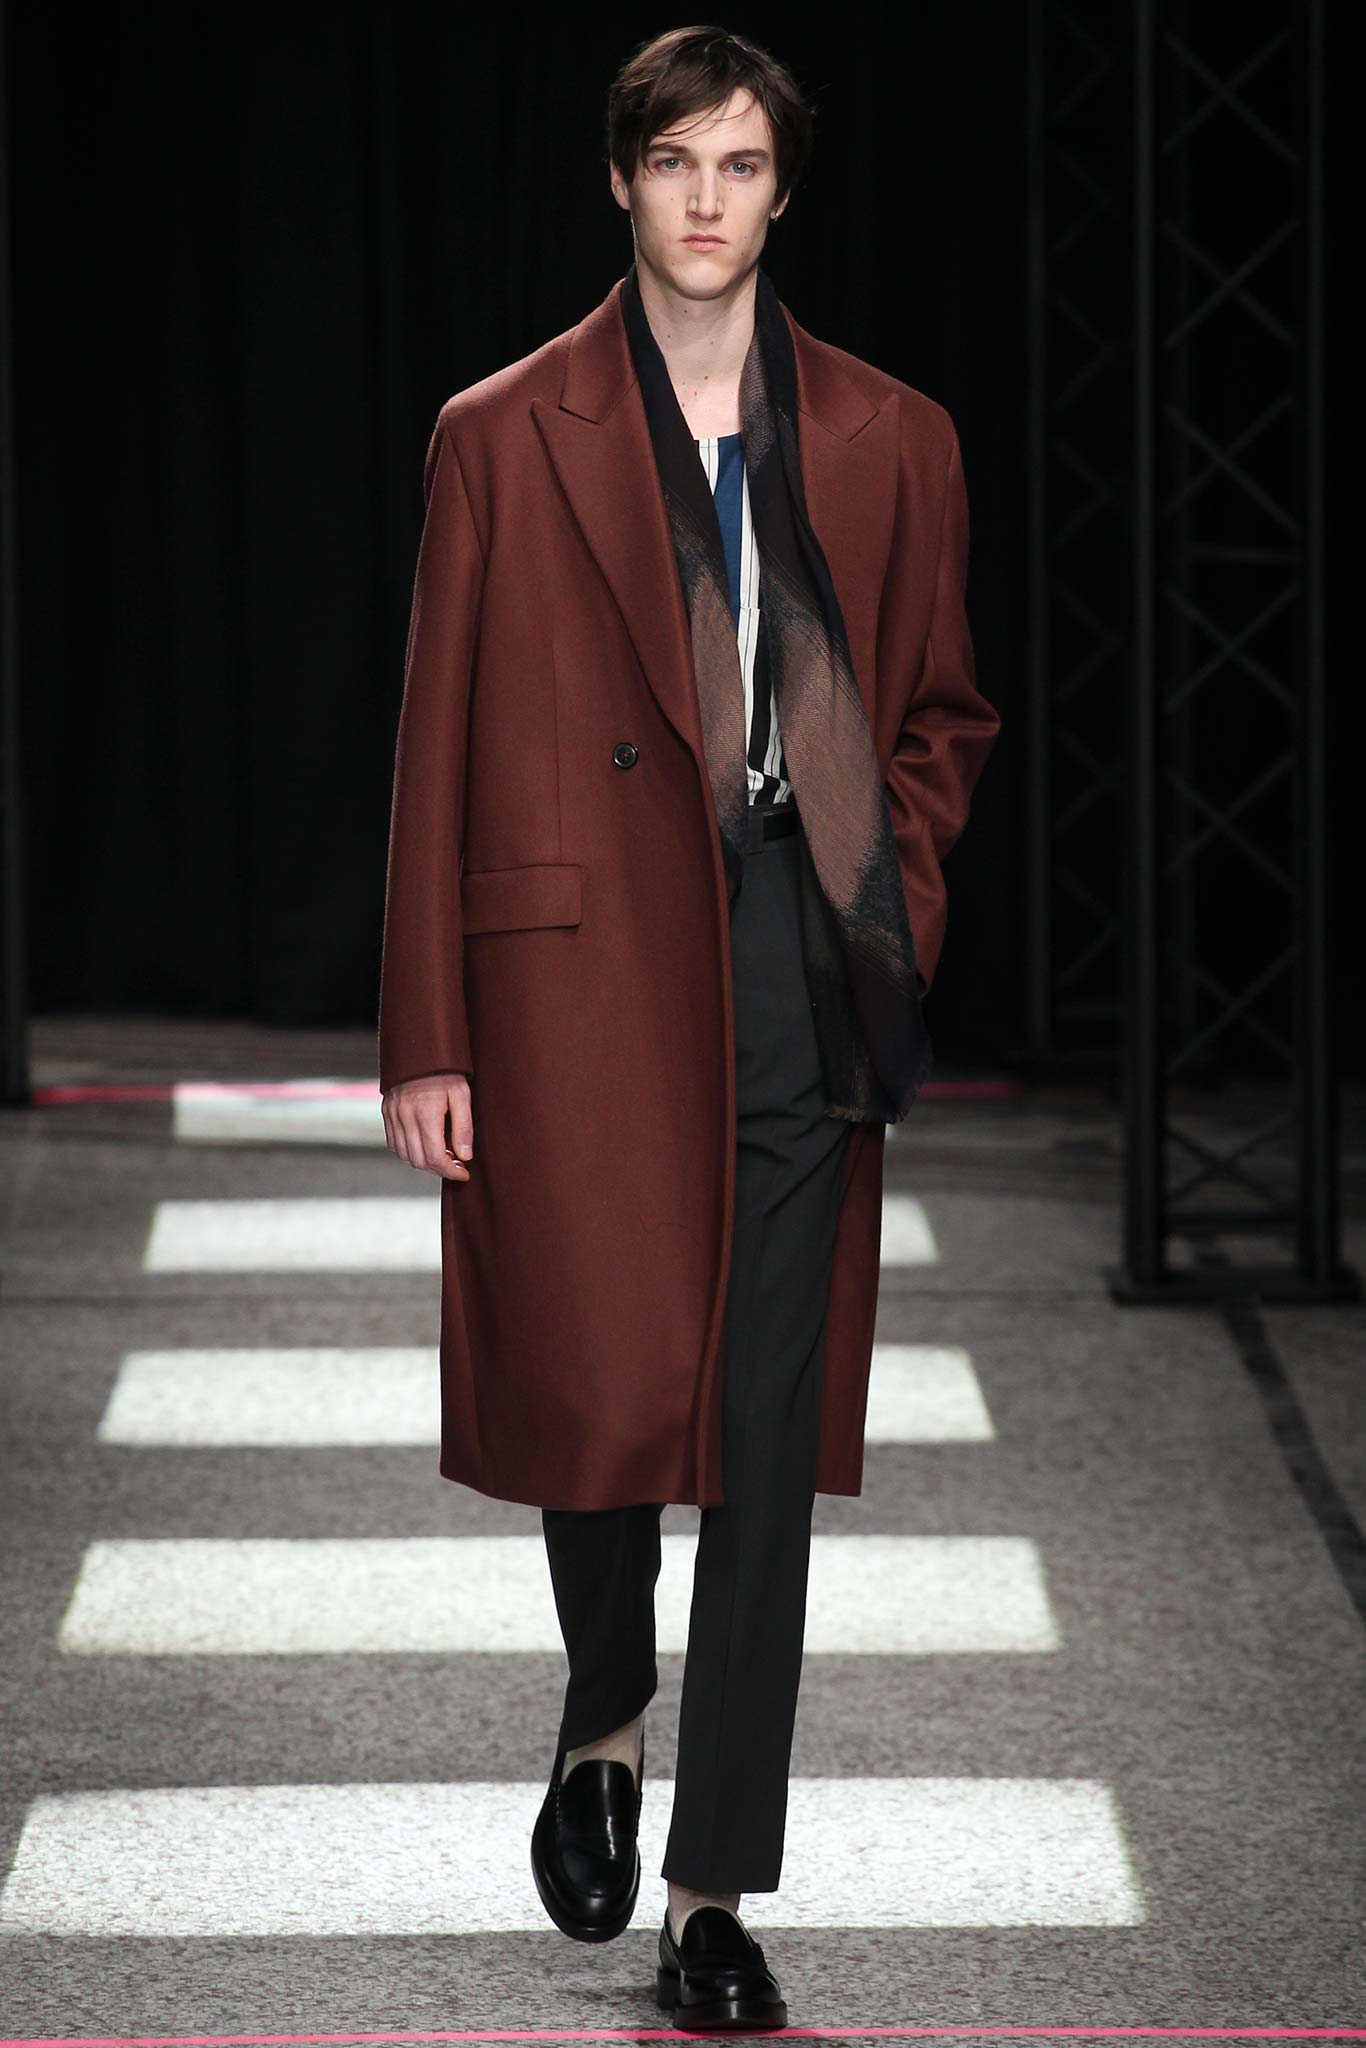 Paul Smith Menswear F/W 2015 Paris